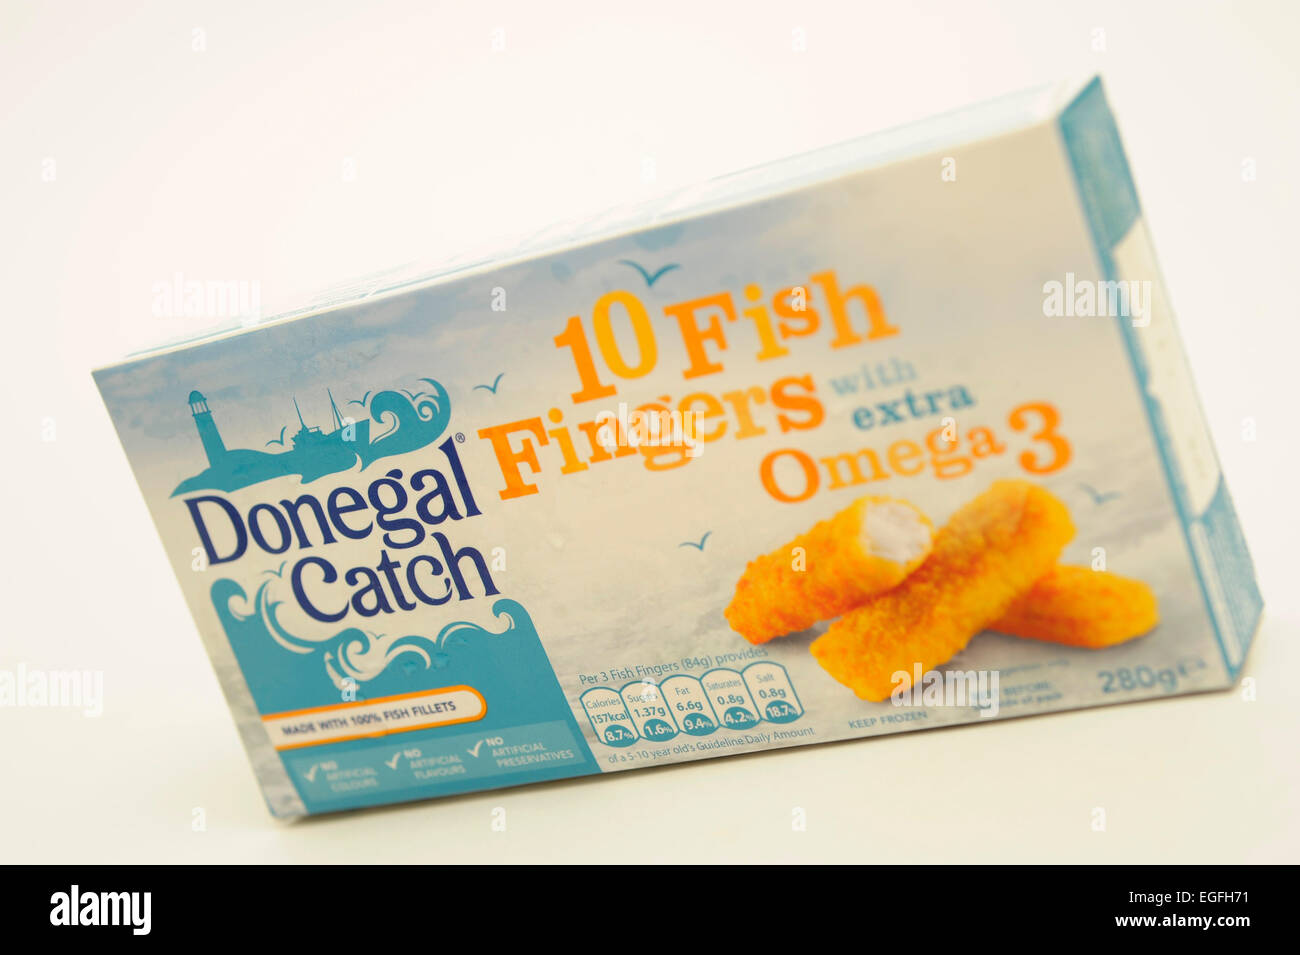 Donegal Catch Fish  Fingers - Stock Image